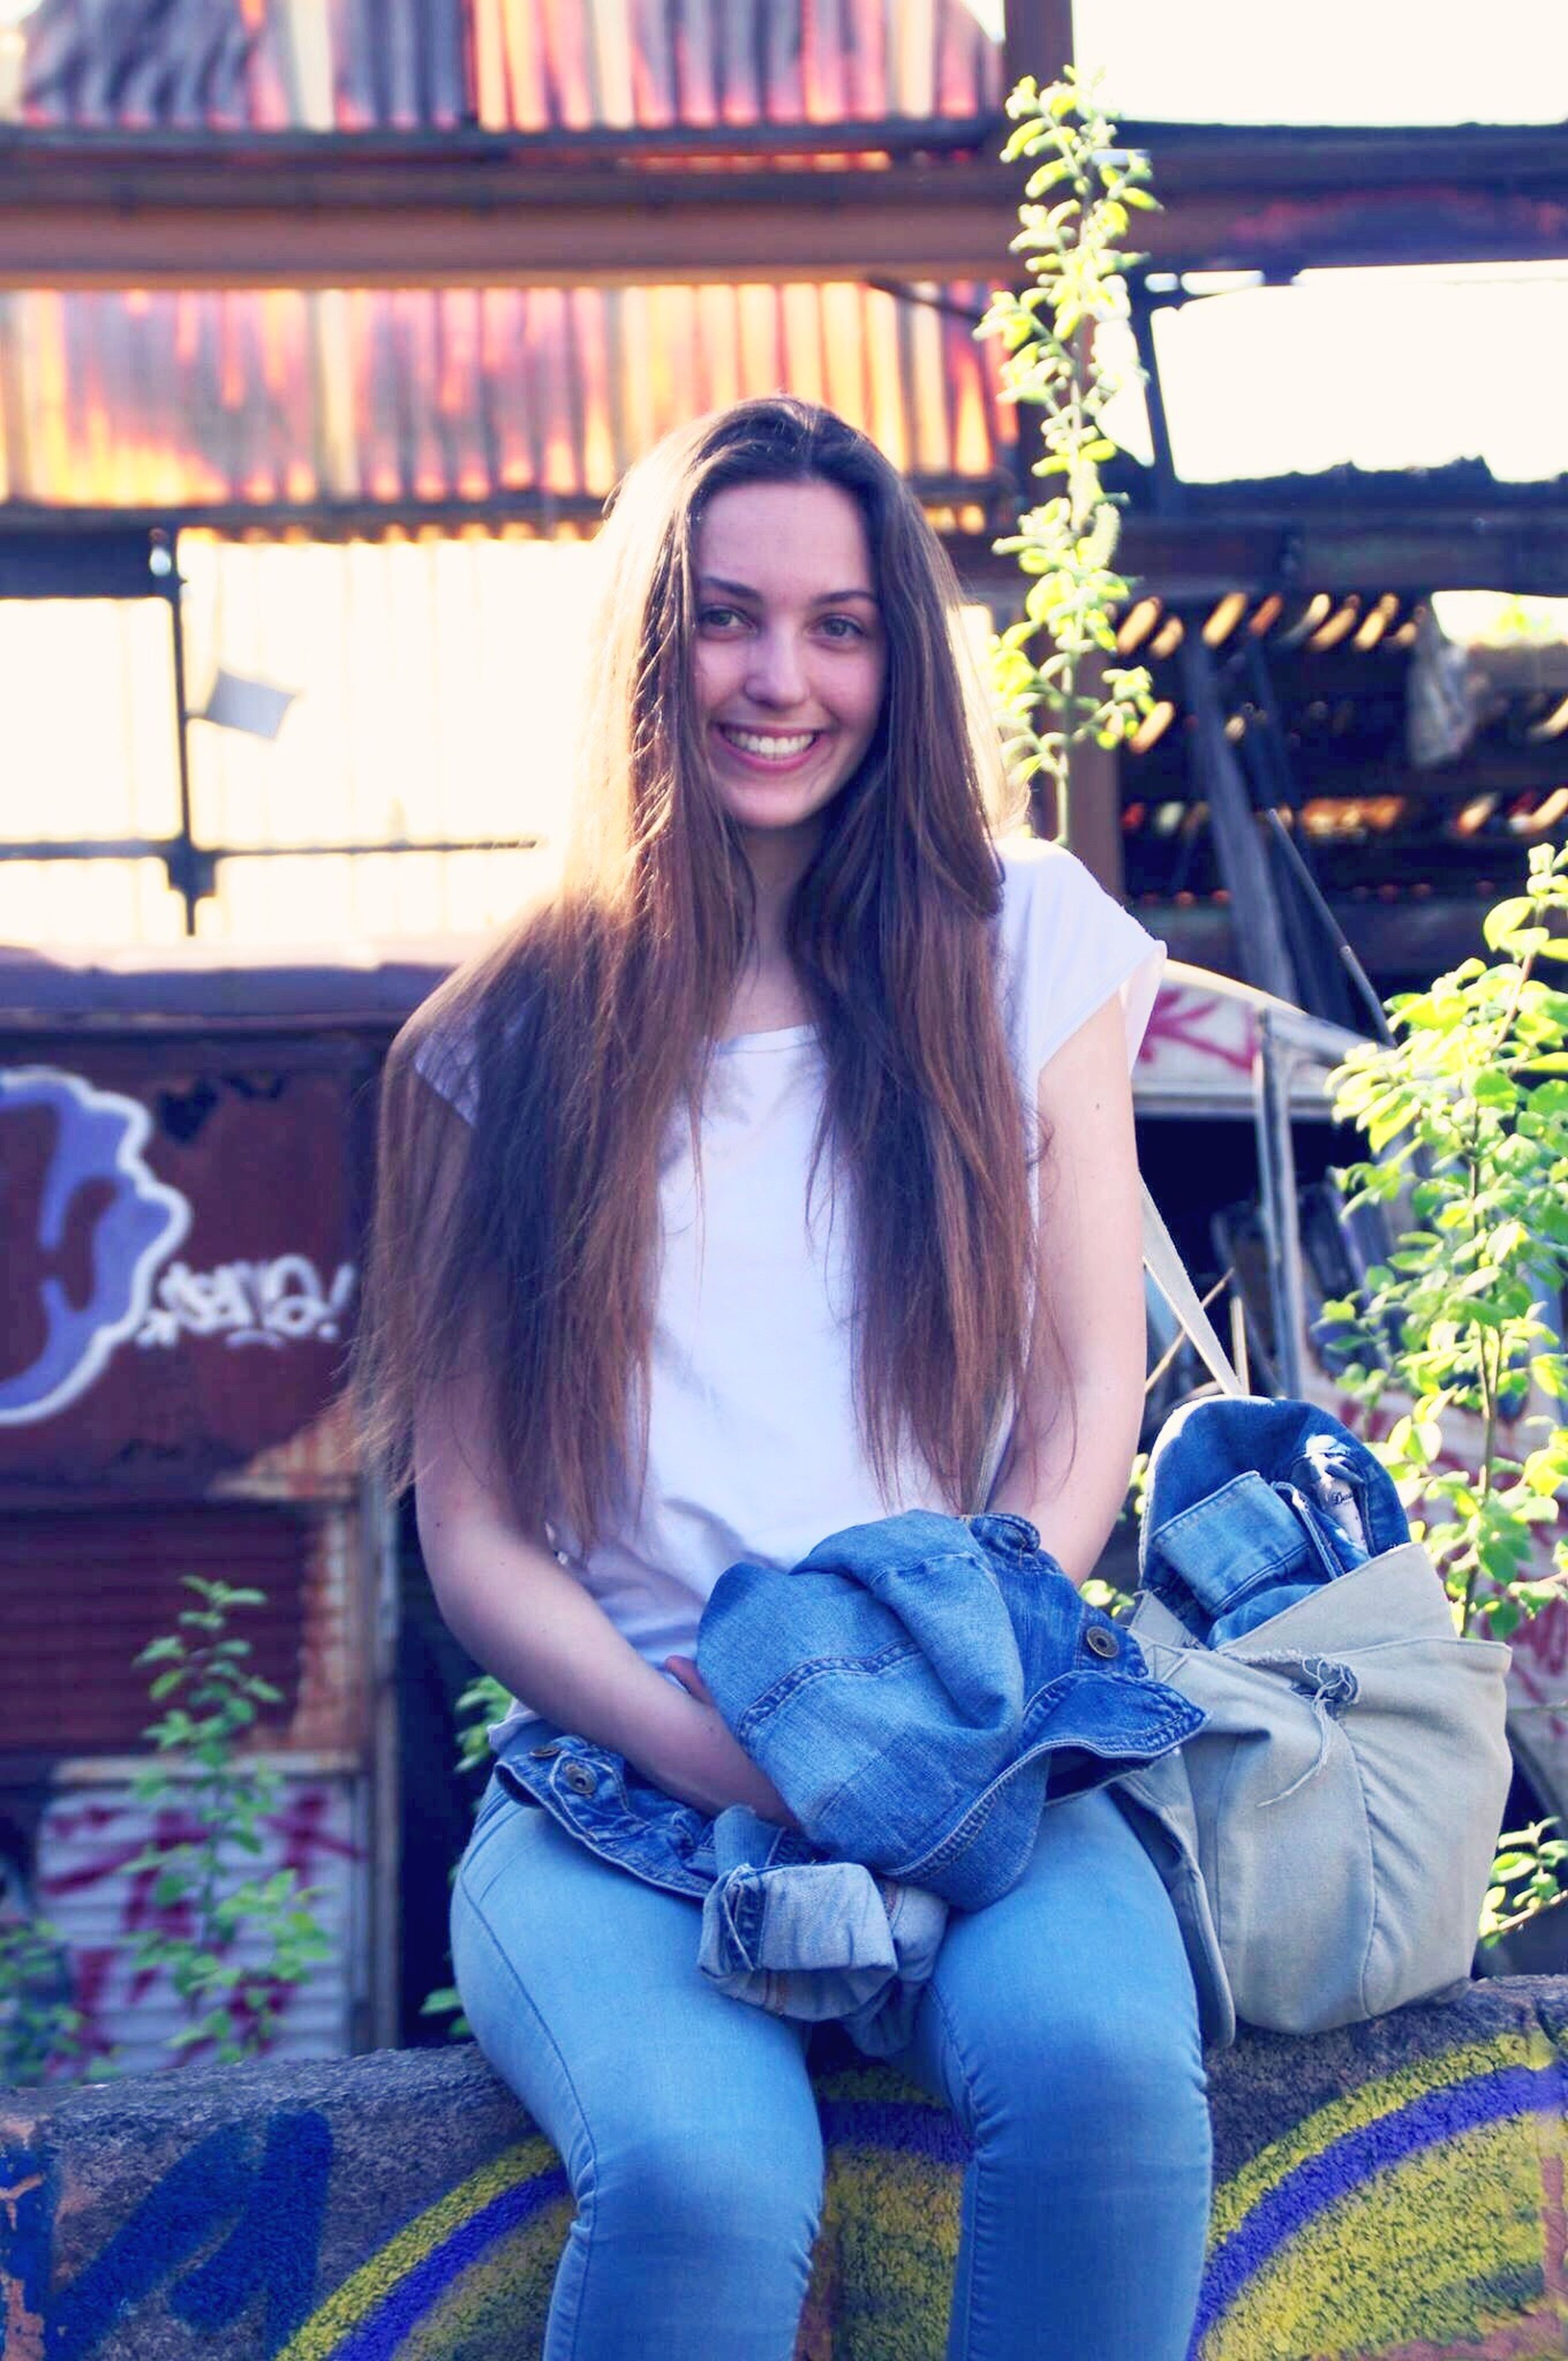 young adult, young women, person, lifestyles, long hair, casual clothing, leisure activity, looking at camera, portrait, sitting, smiling, front view, three quarter length, waist up, sunglasses, relaxation, happiness